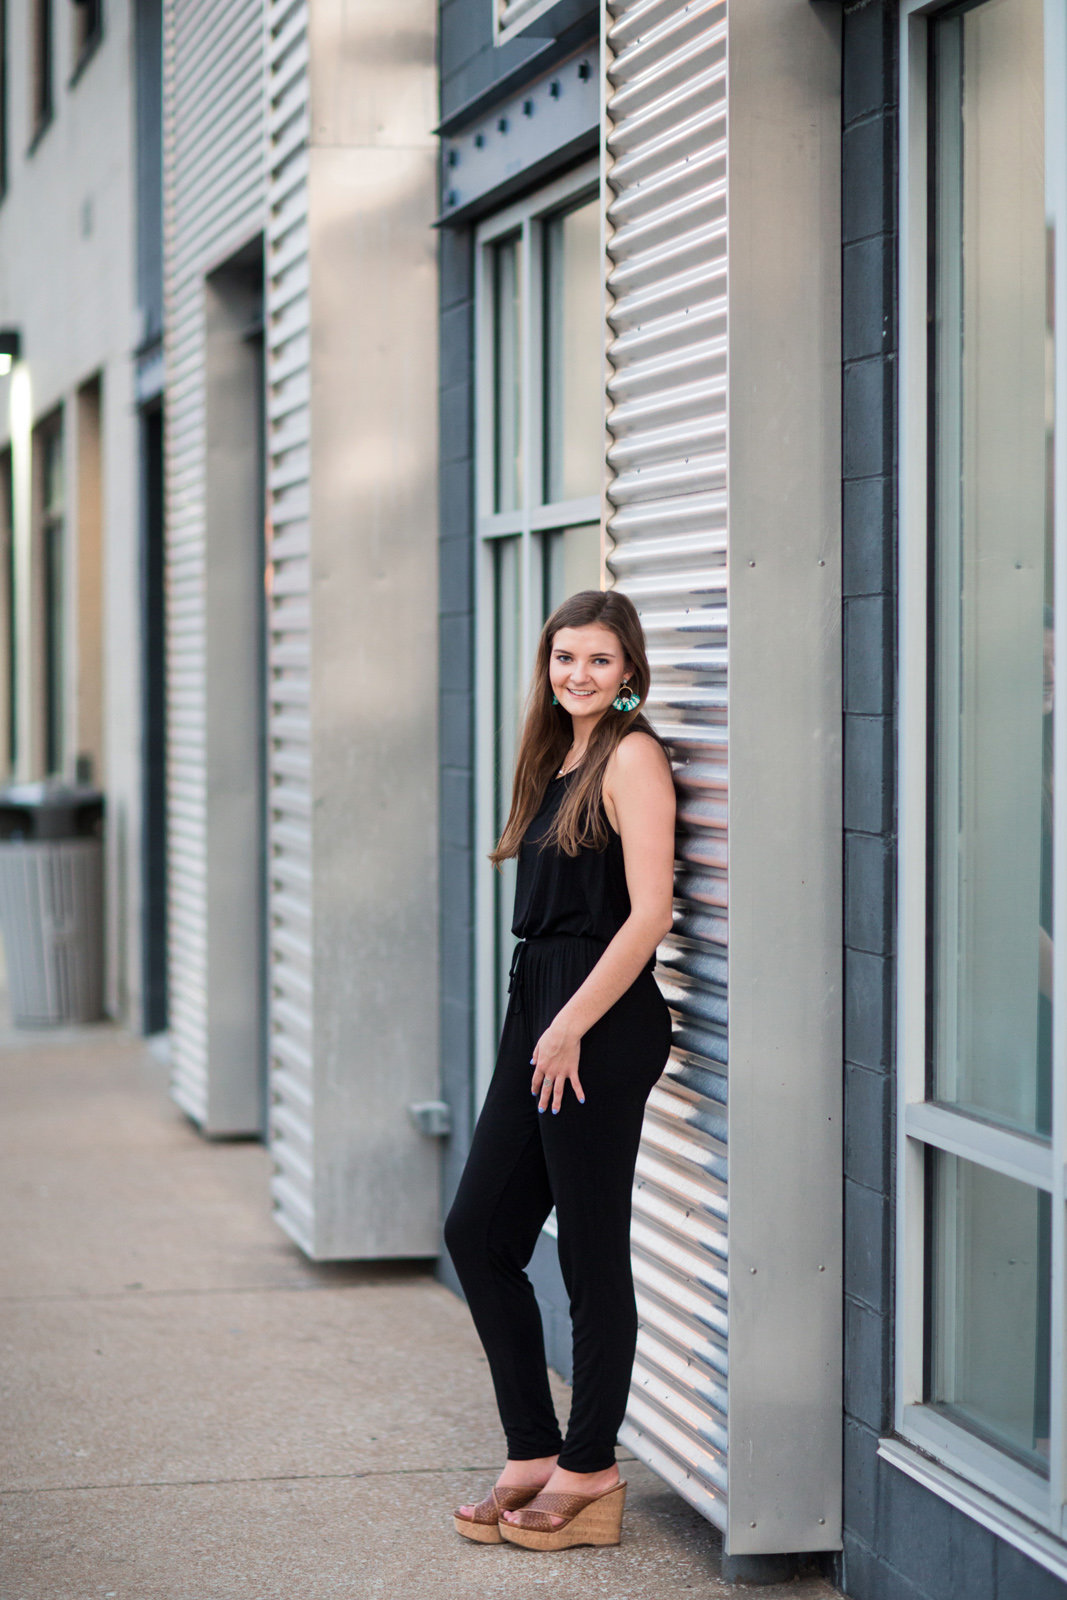 L Photographie high school senior photos midtown St. Louis 75